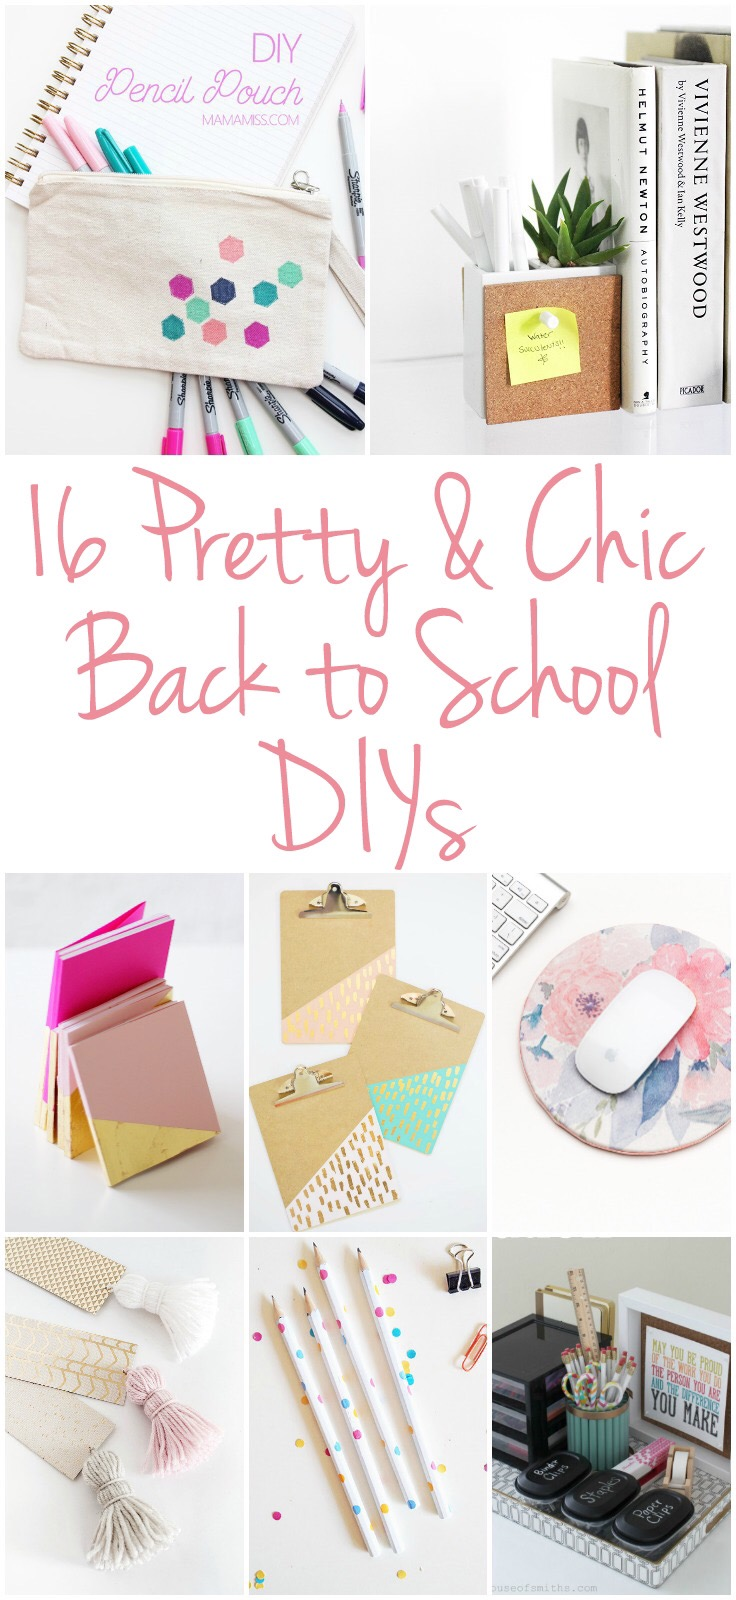 16 Pretty & Chic Back to School DIYs, home office organization, back to school crafts, office supplies, DIY, modern office decor